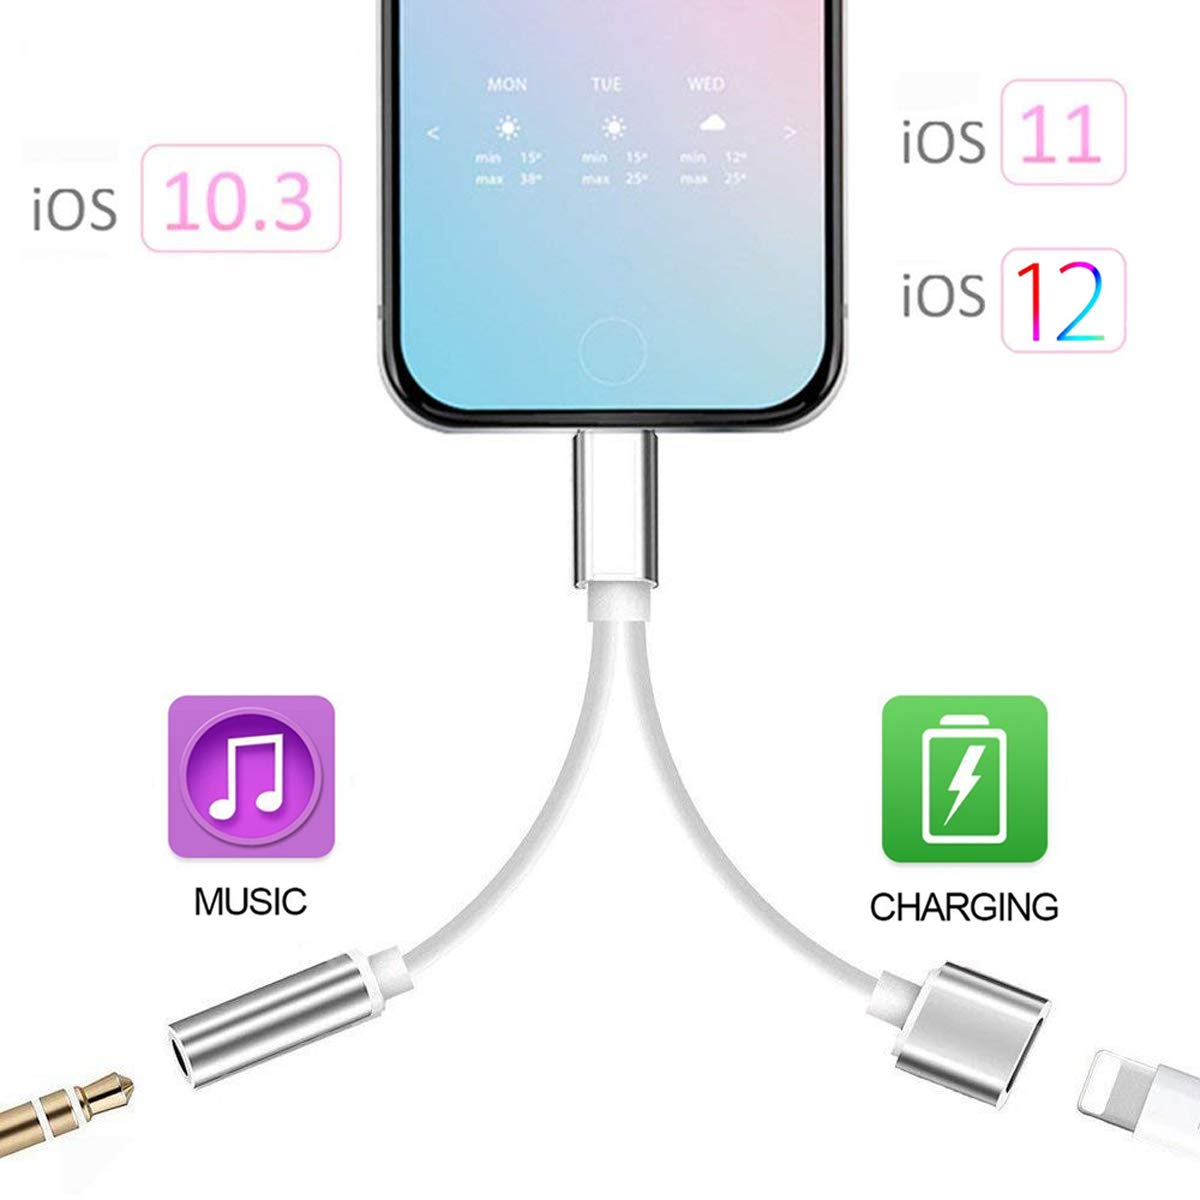 2 in 1 Adapter Compatible with iPhone 7/7 Plus/XS Max/XS/XR/X 10/8/8 Plus, Compatible iPhone Headphone Adapter/Splitter, 2-Port Headphone Audio and Charger Adapter,Compatible iOS 10.3, iOS 11 or Later